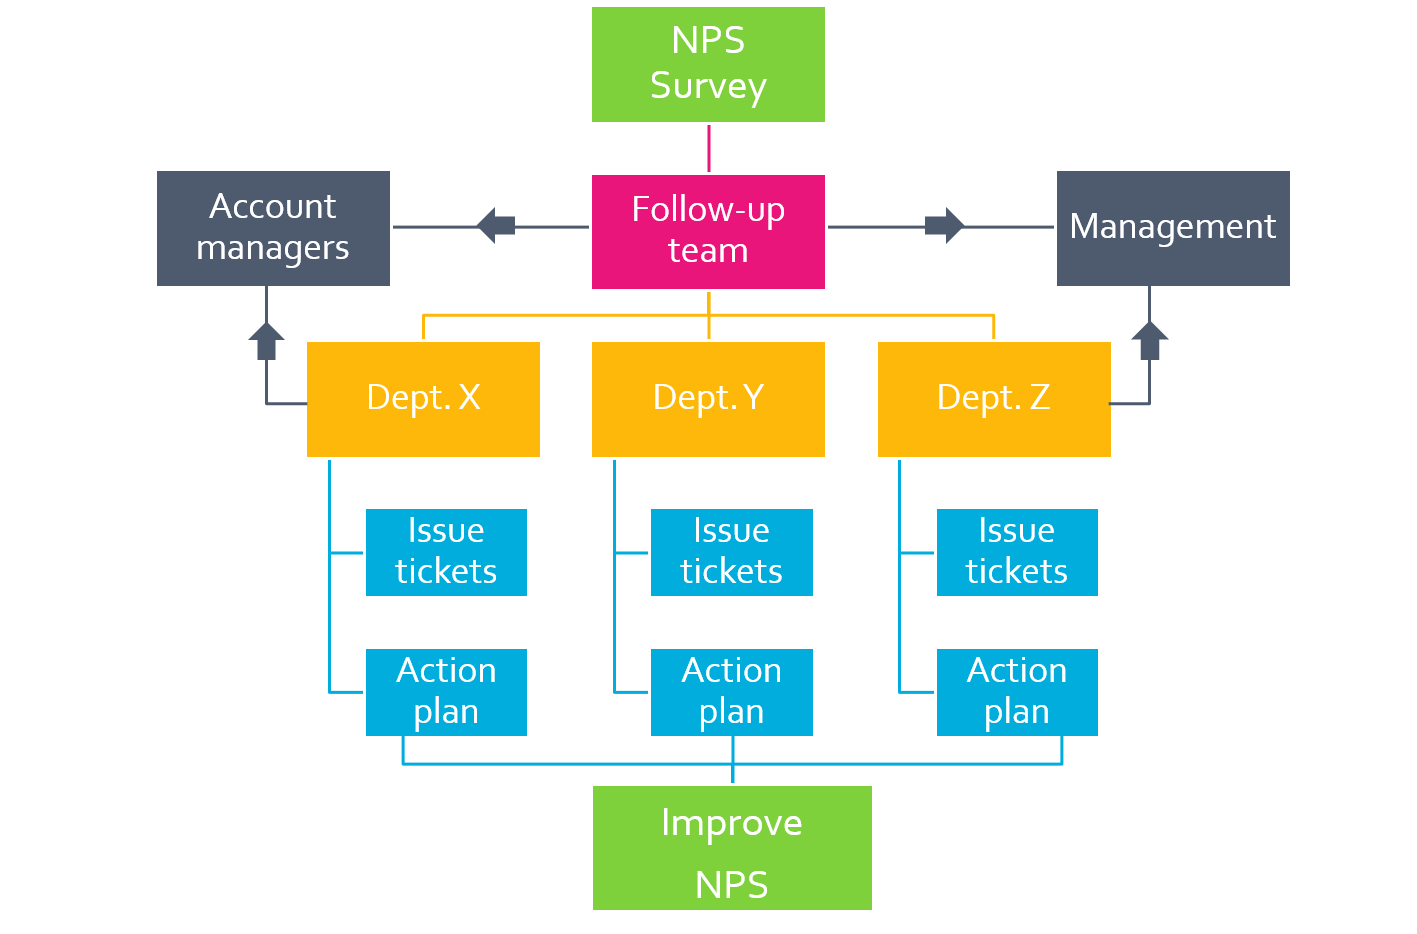 Net Promoter Score Tools - Follow-up flowchart